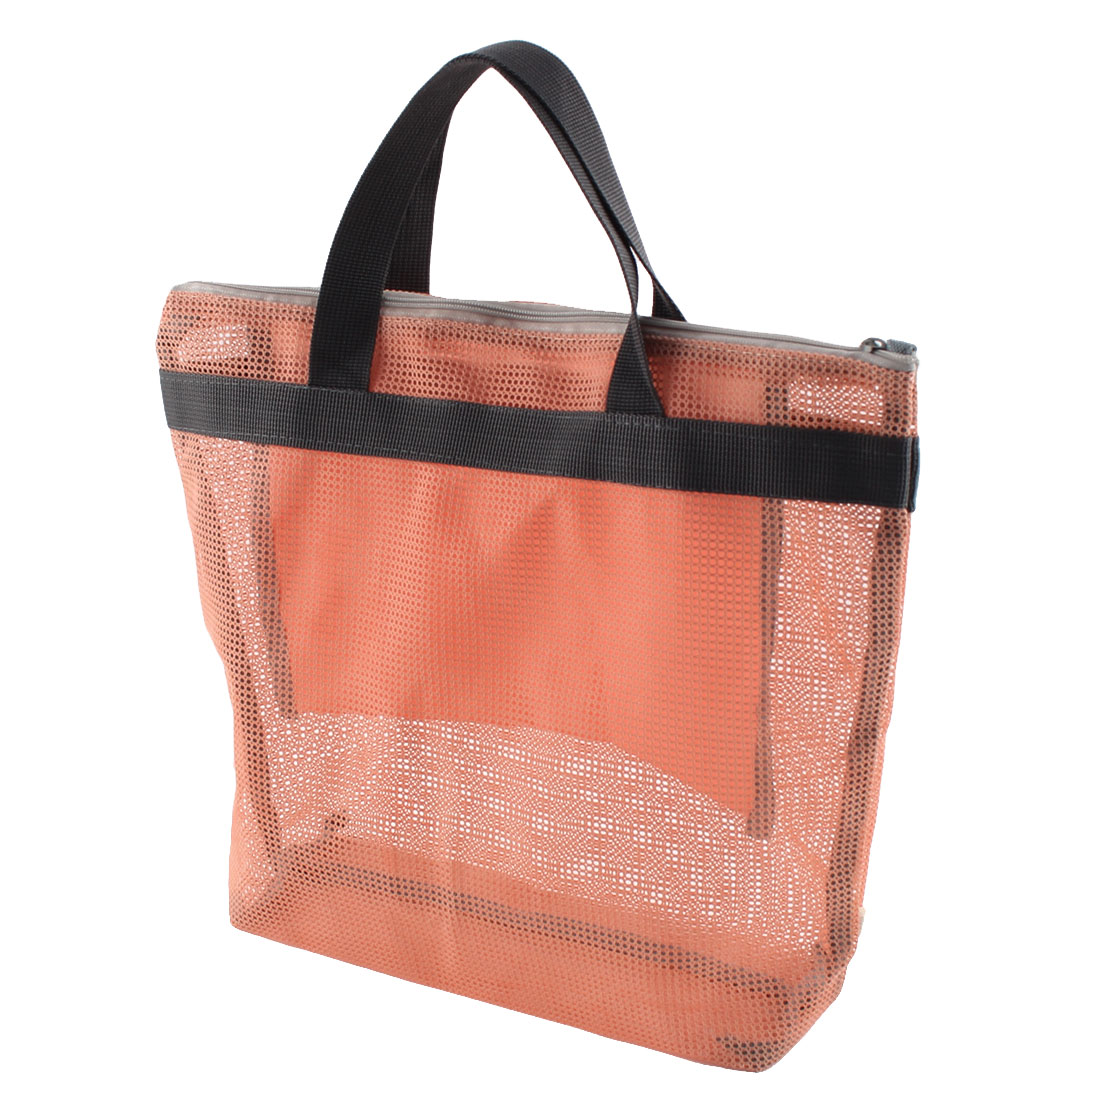 Travelling Sea Shore Bathing Product Towel Holder Storage Handbag Mesh Bag Container